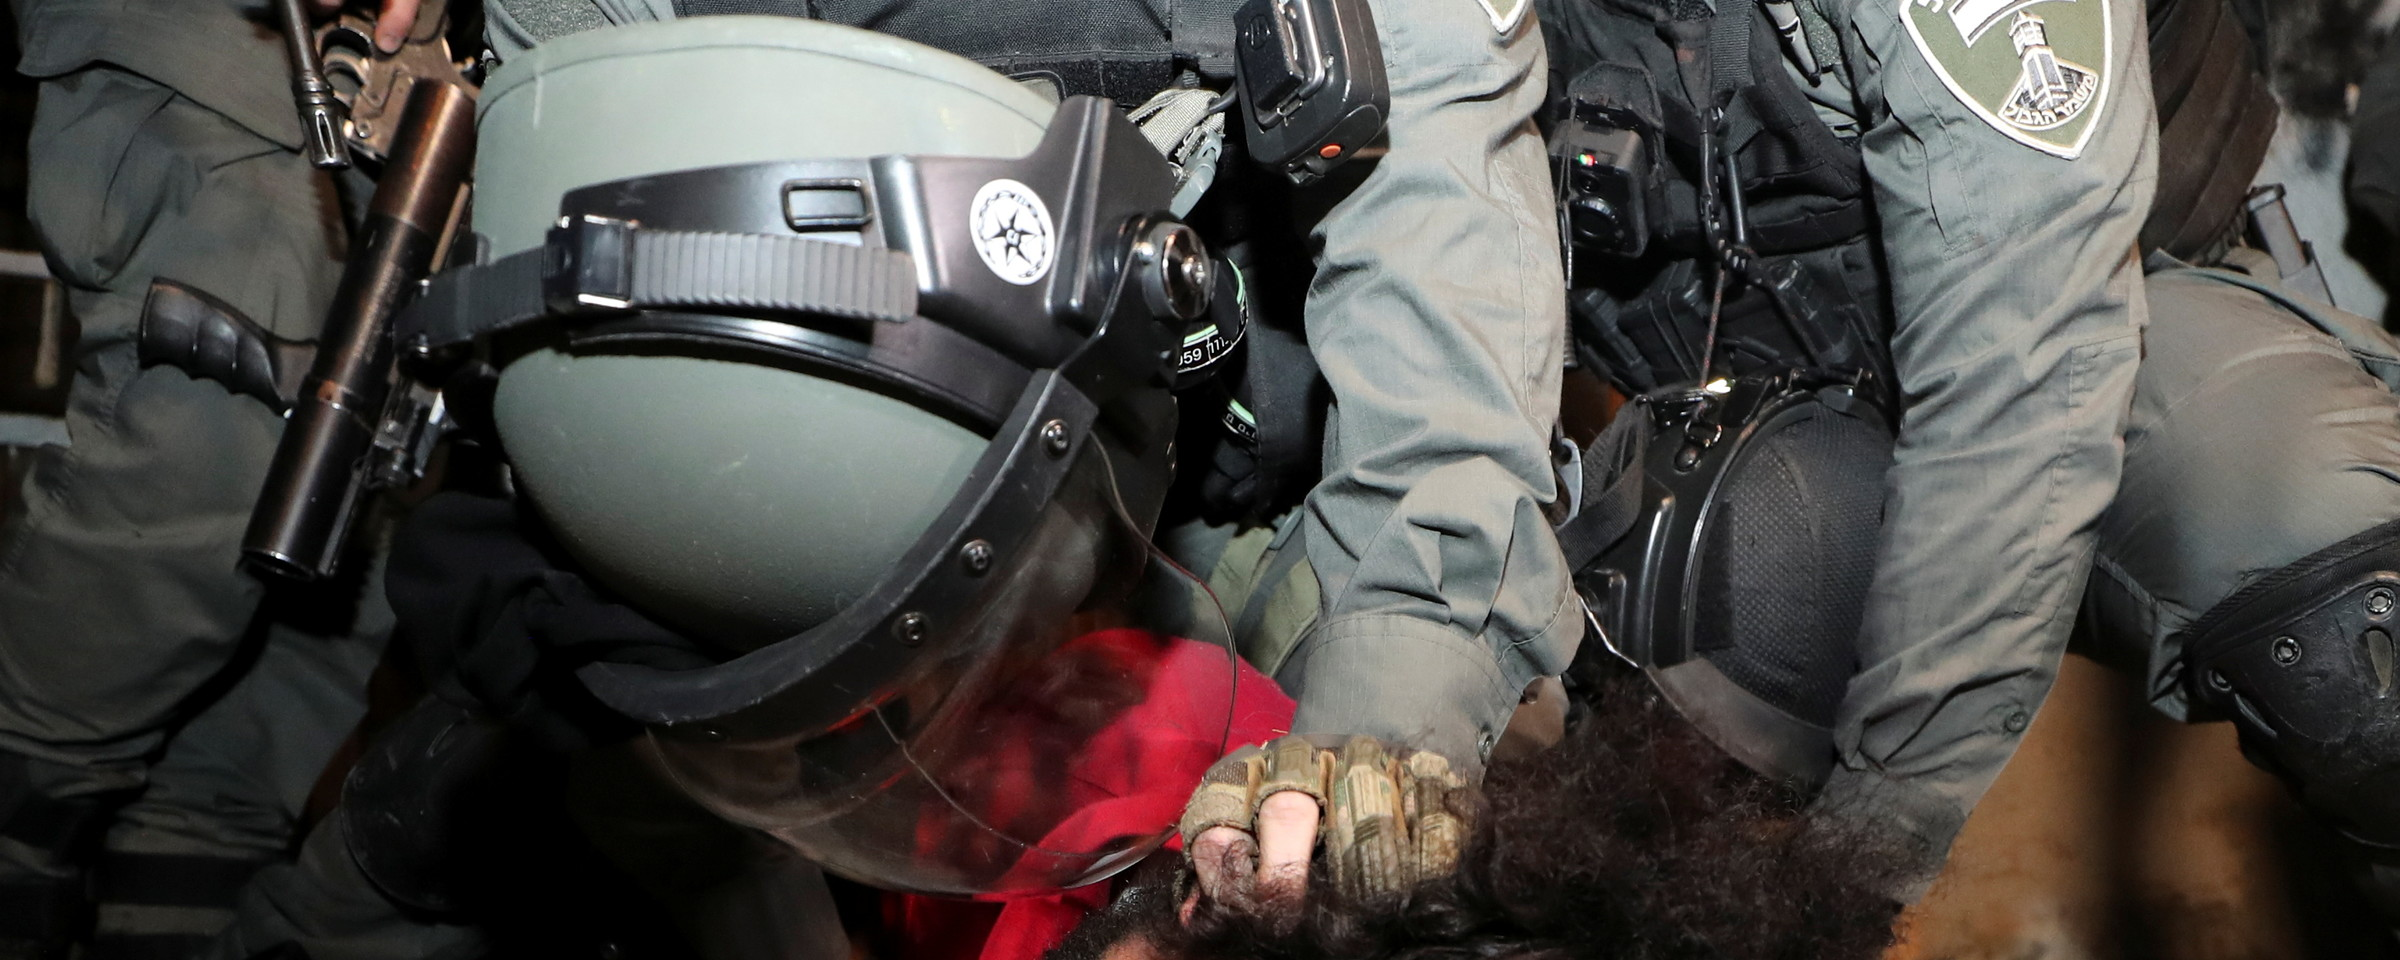 Police in riot gear hold the head of a pinned-down man to the ground